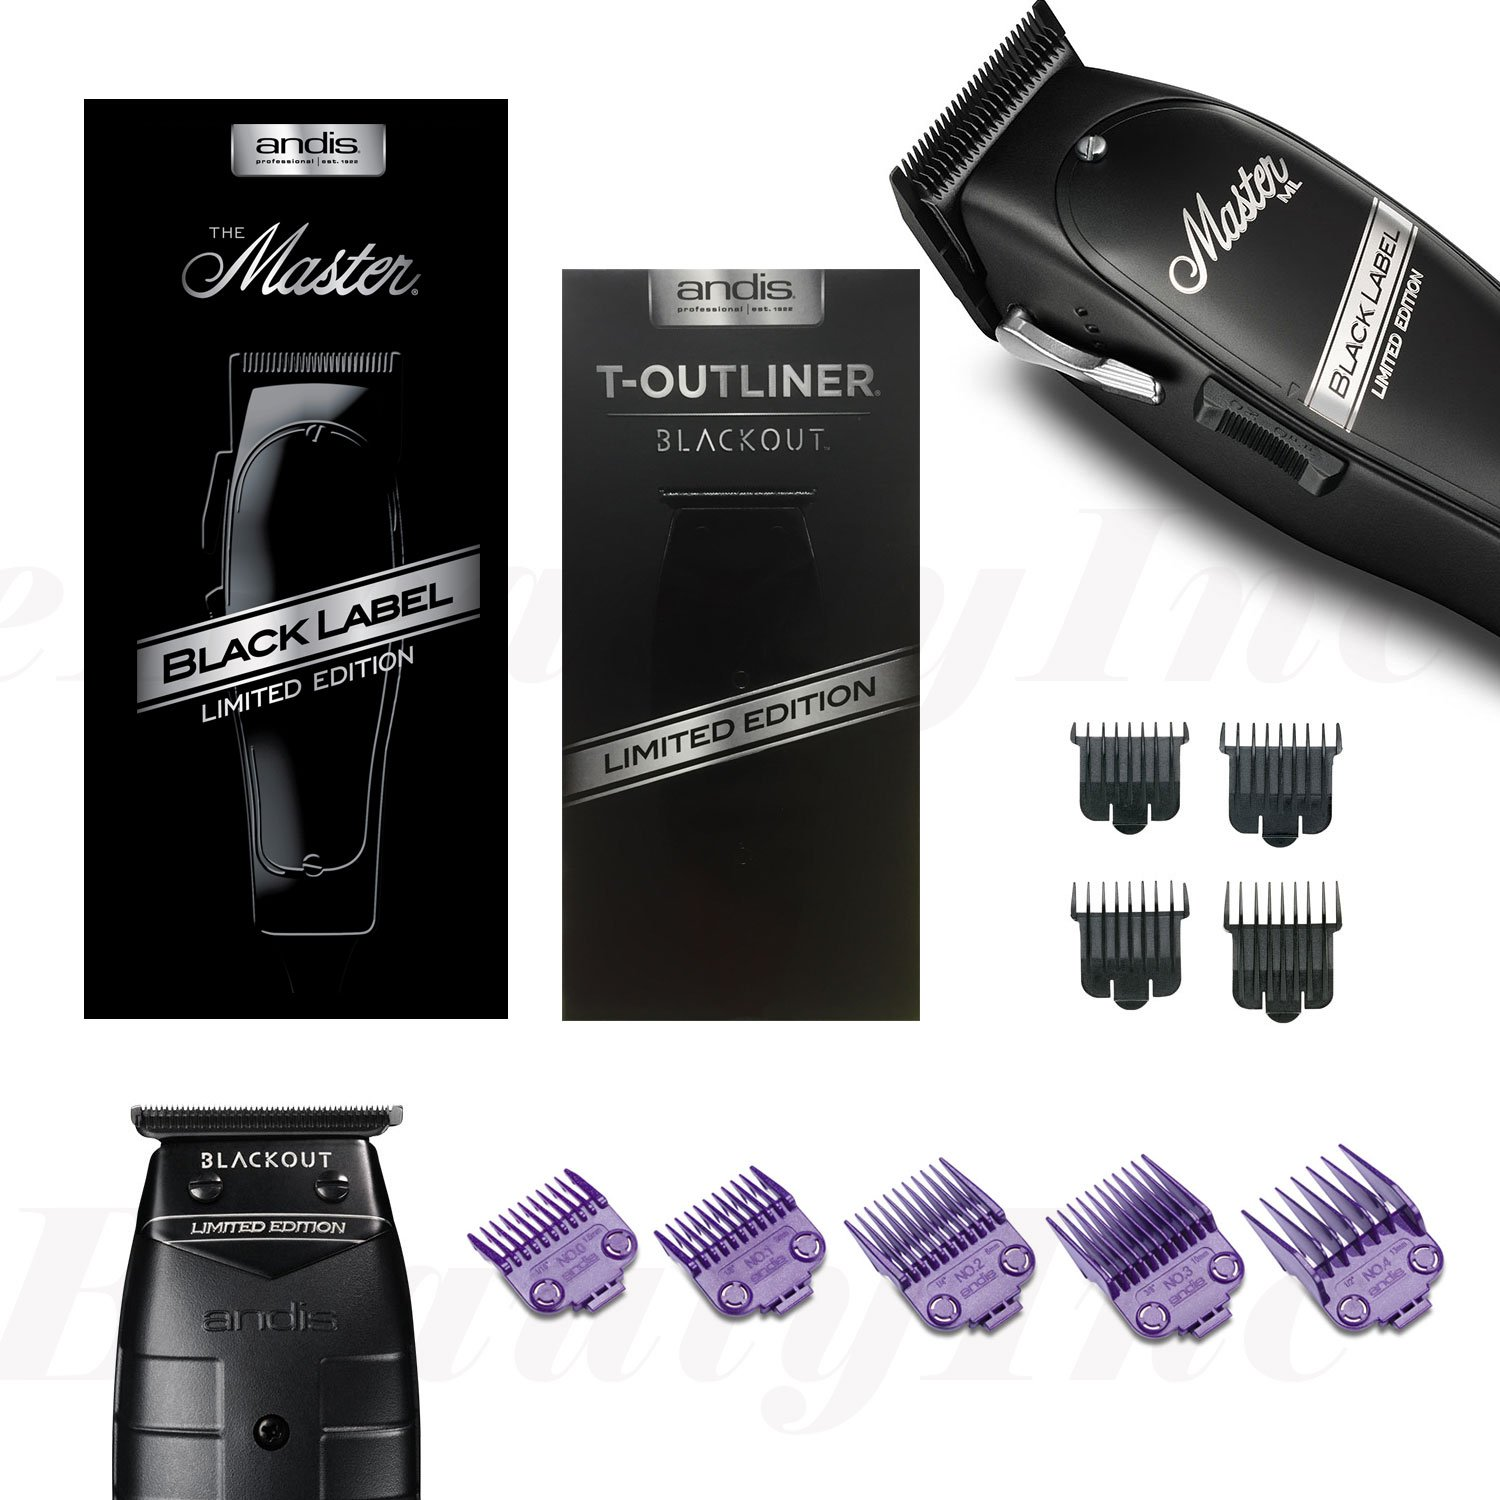 Andis Master Black label Clipper & Blackout T-Outliner Trimmer w/ Magnetic Combs